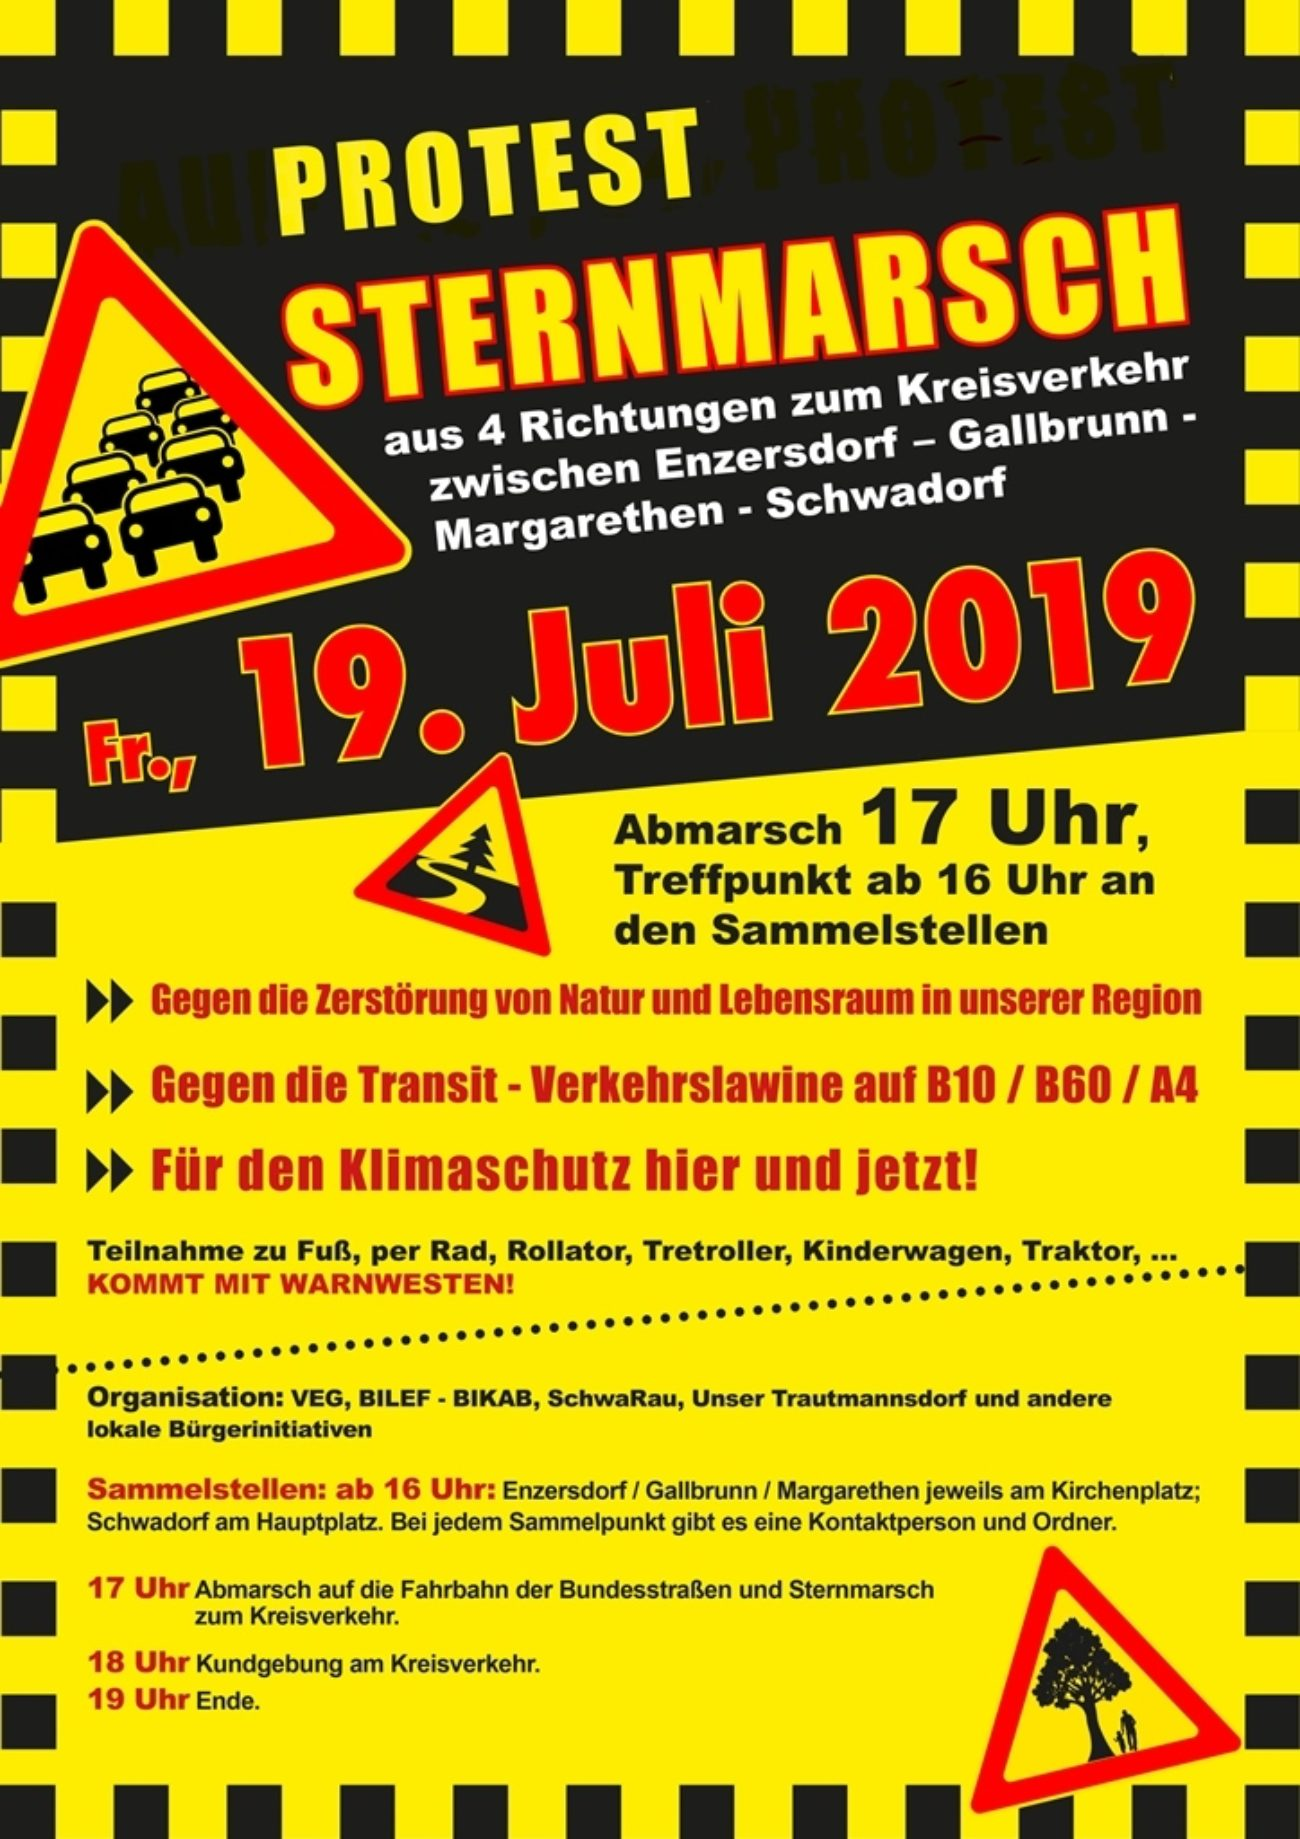 Protest BI 19 07 2019 Plakat red